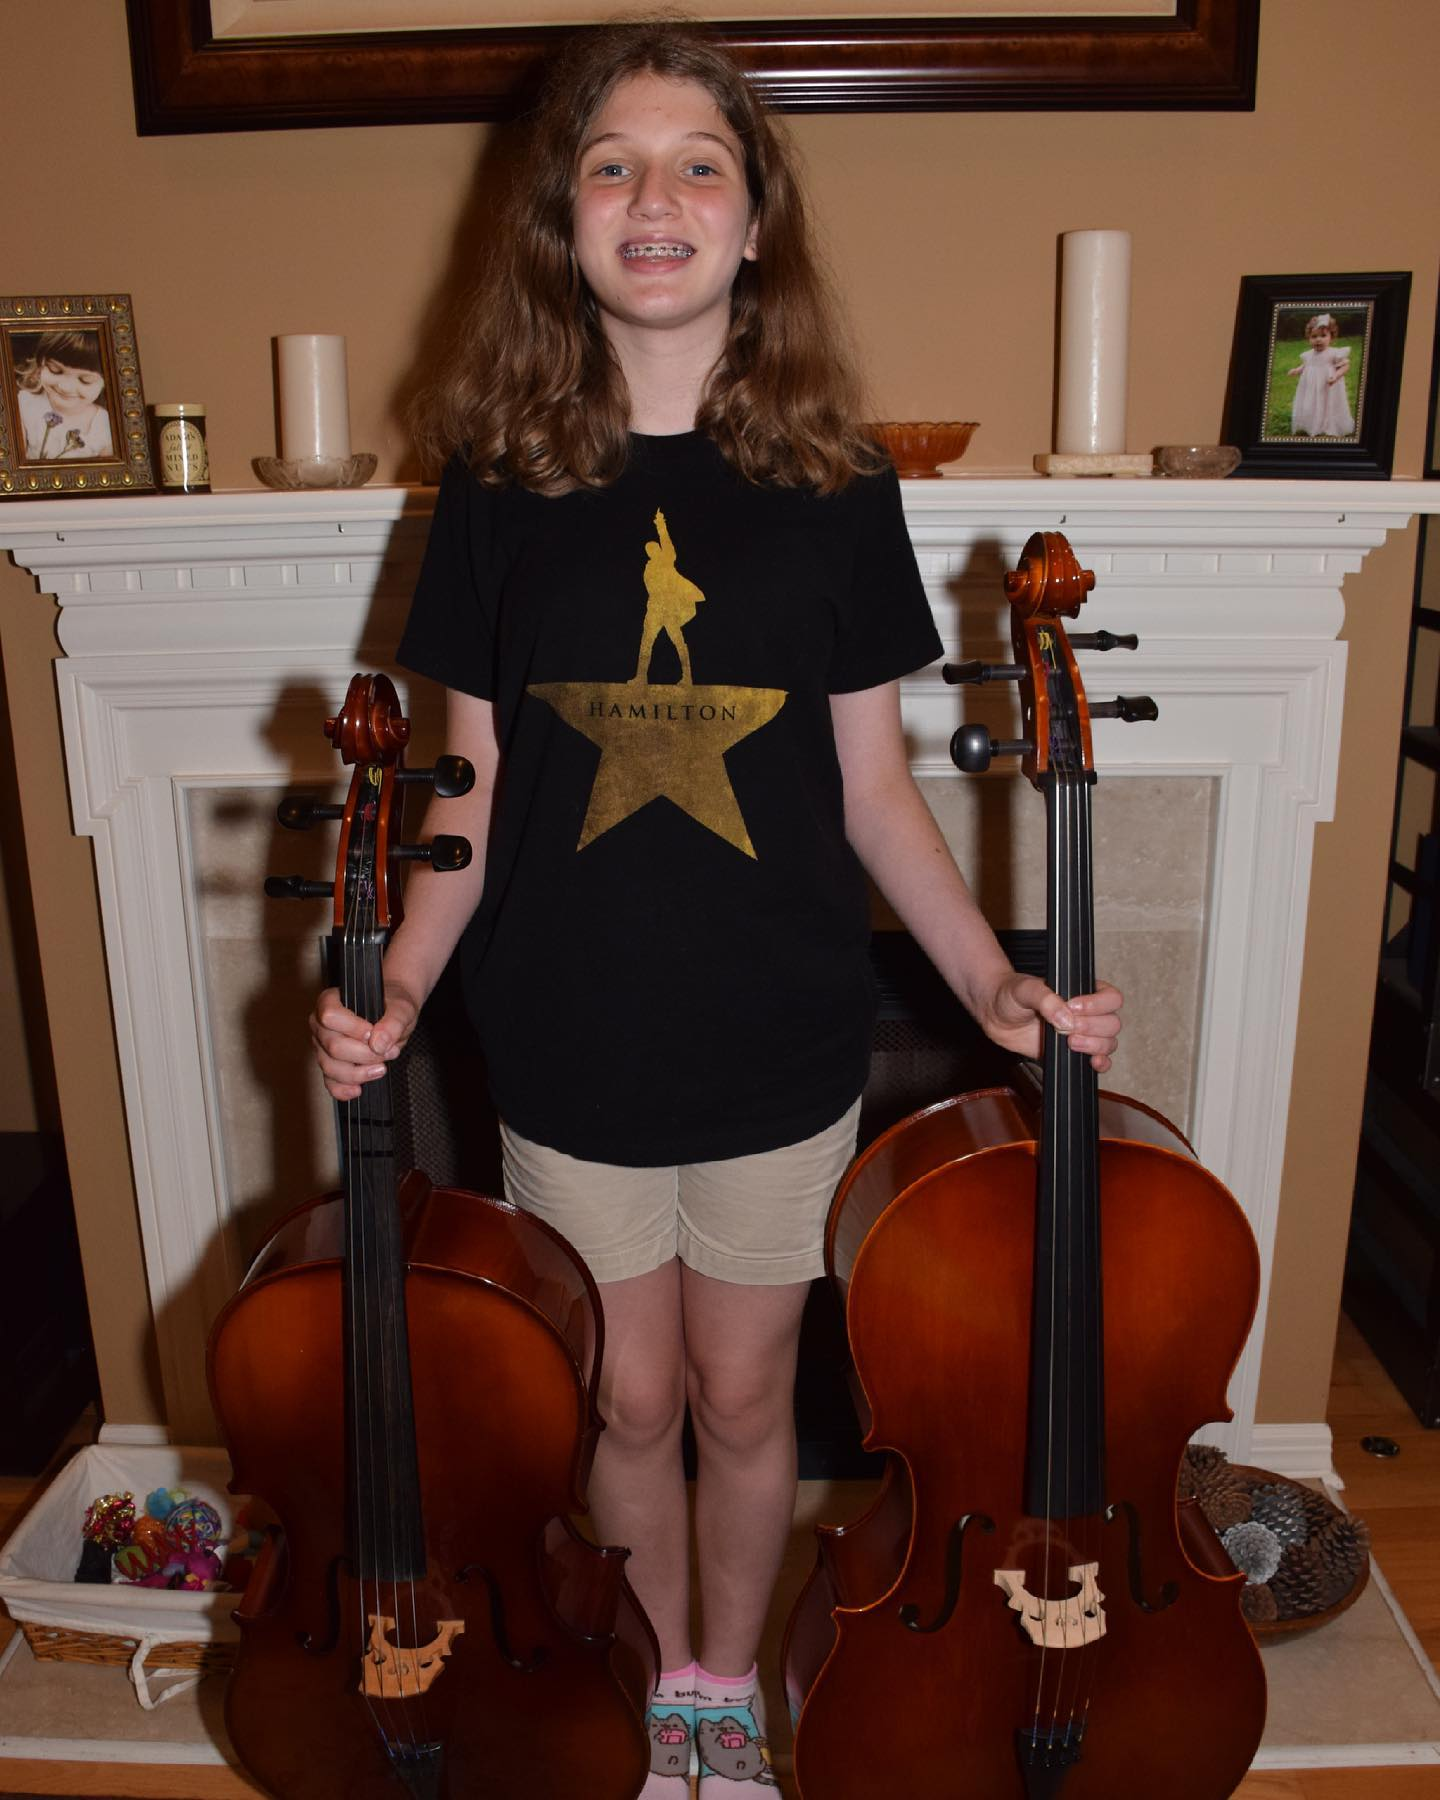 Graduating from a 3/4 size cello to a full size model. #family #music #cello